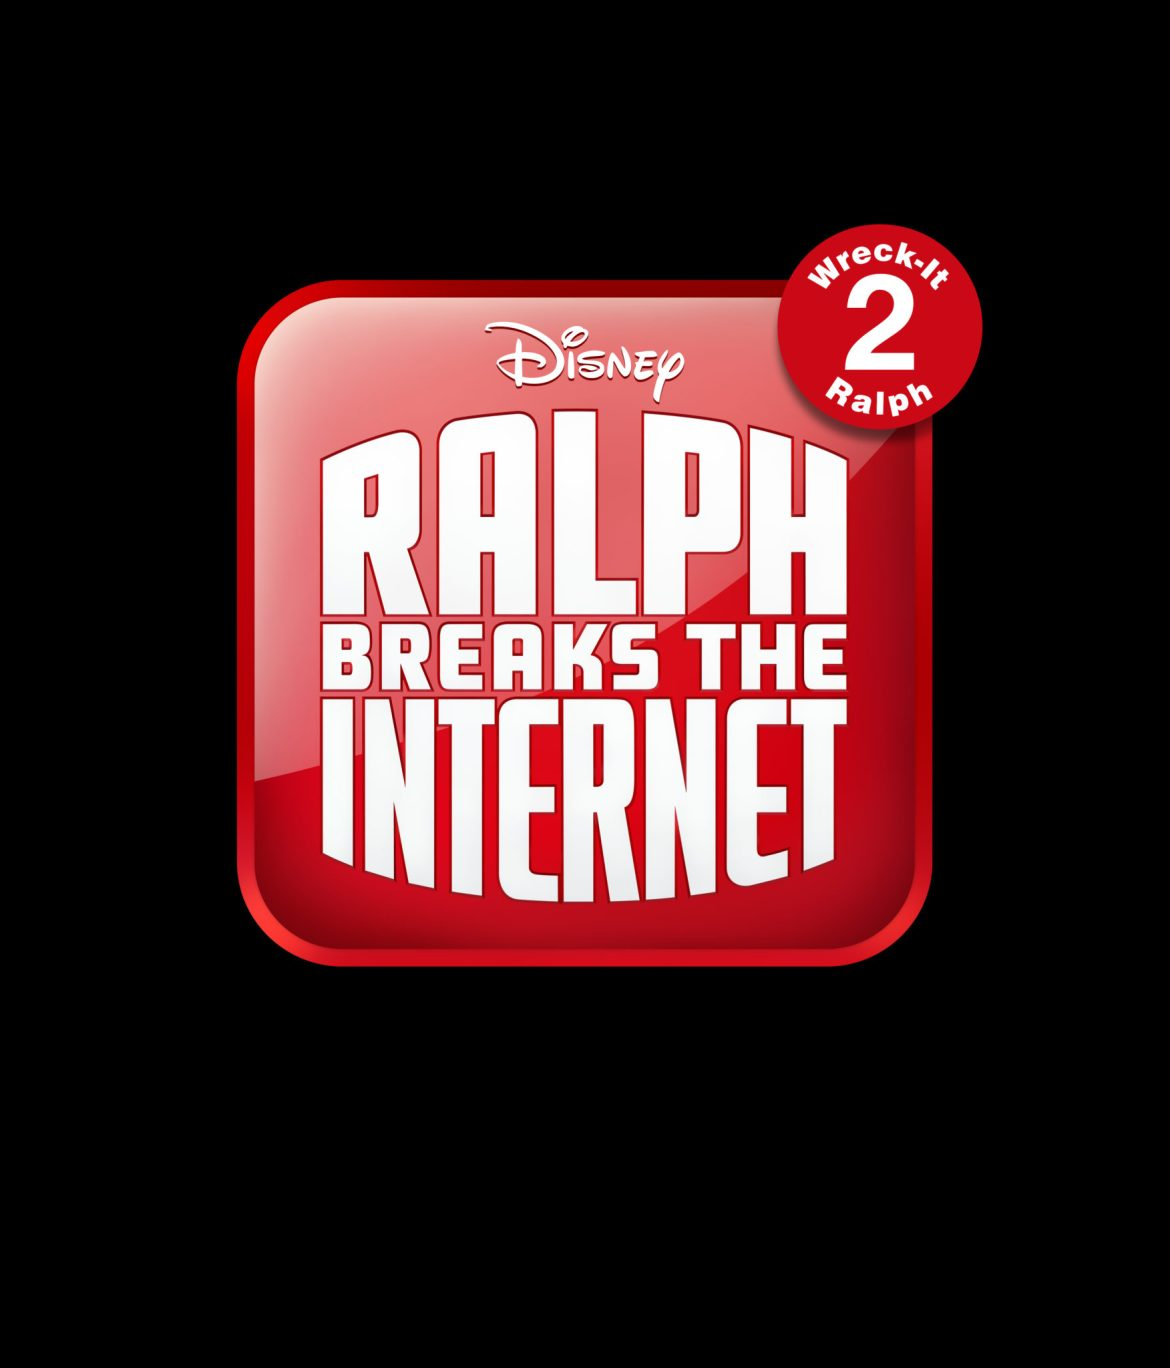 Wreck-It Ralph Sequel Title, Release Date And Story Announced!